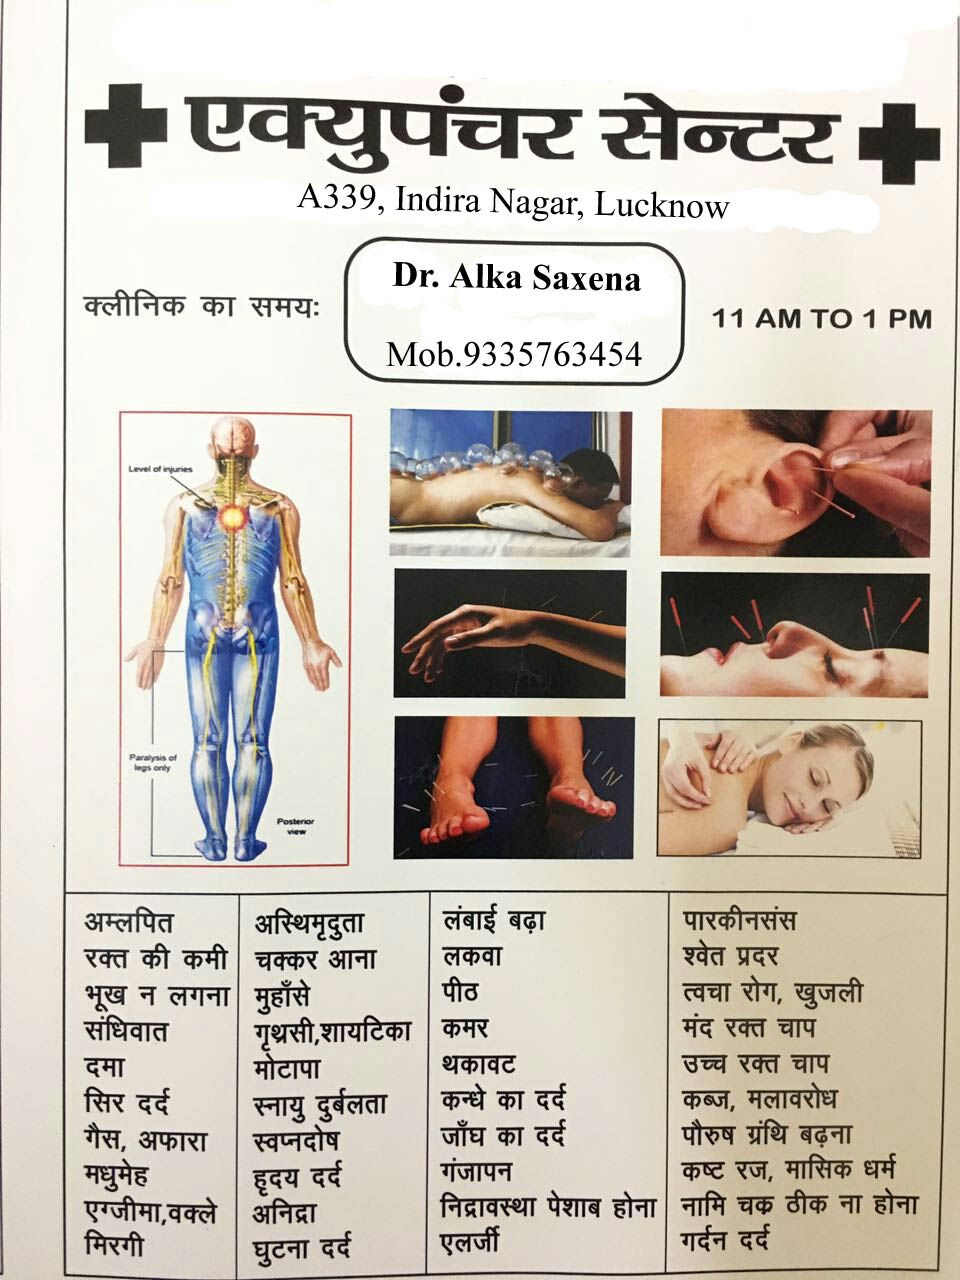 Acupuncture Centre, A339, Indira Nagar, Lucknow, Uttar Pradesh  IMAGES, GIF, ANIMATED GIF, WALLPAPER, STICKER FOR WHATSAPP & FACEBOOK